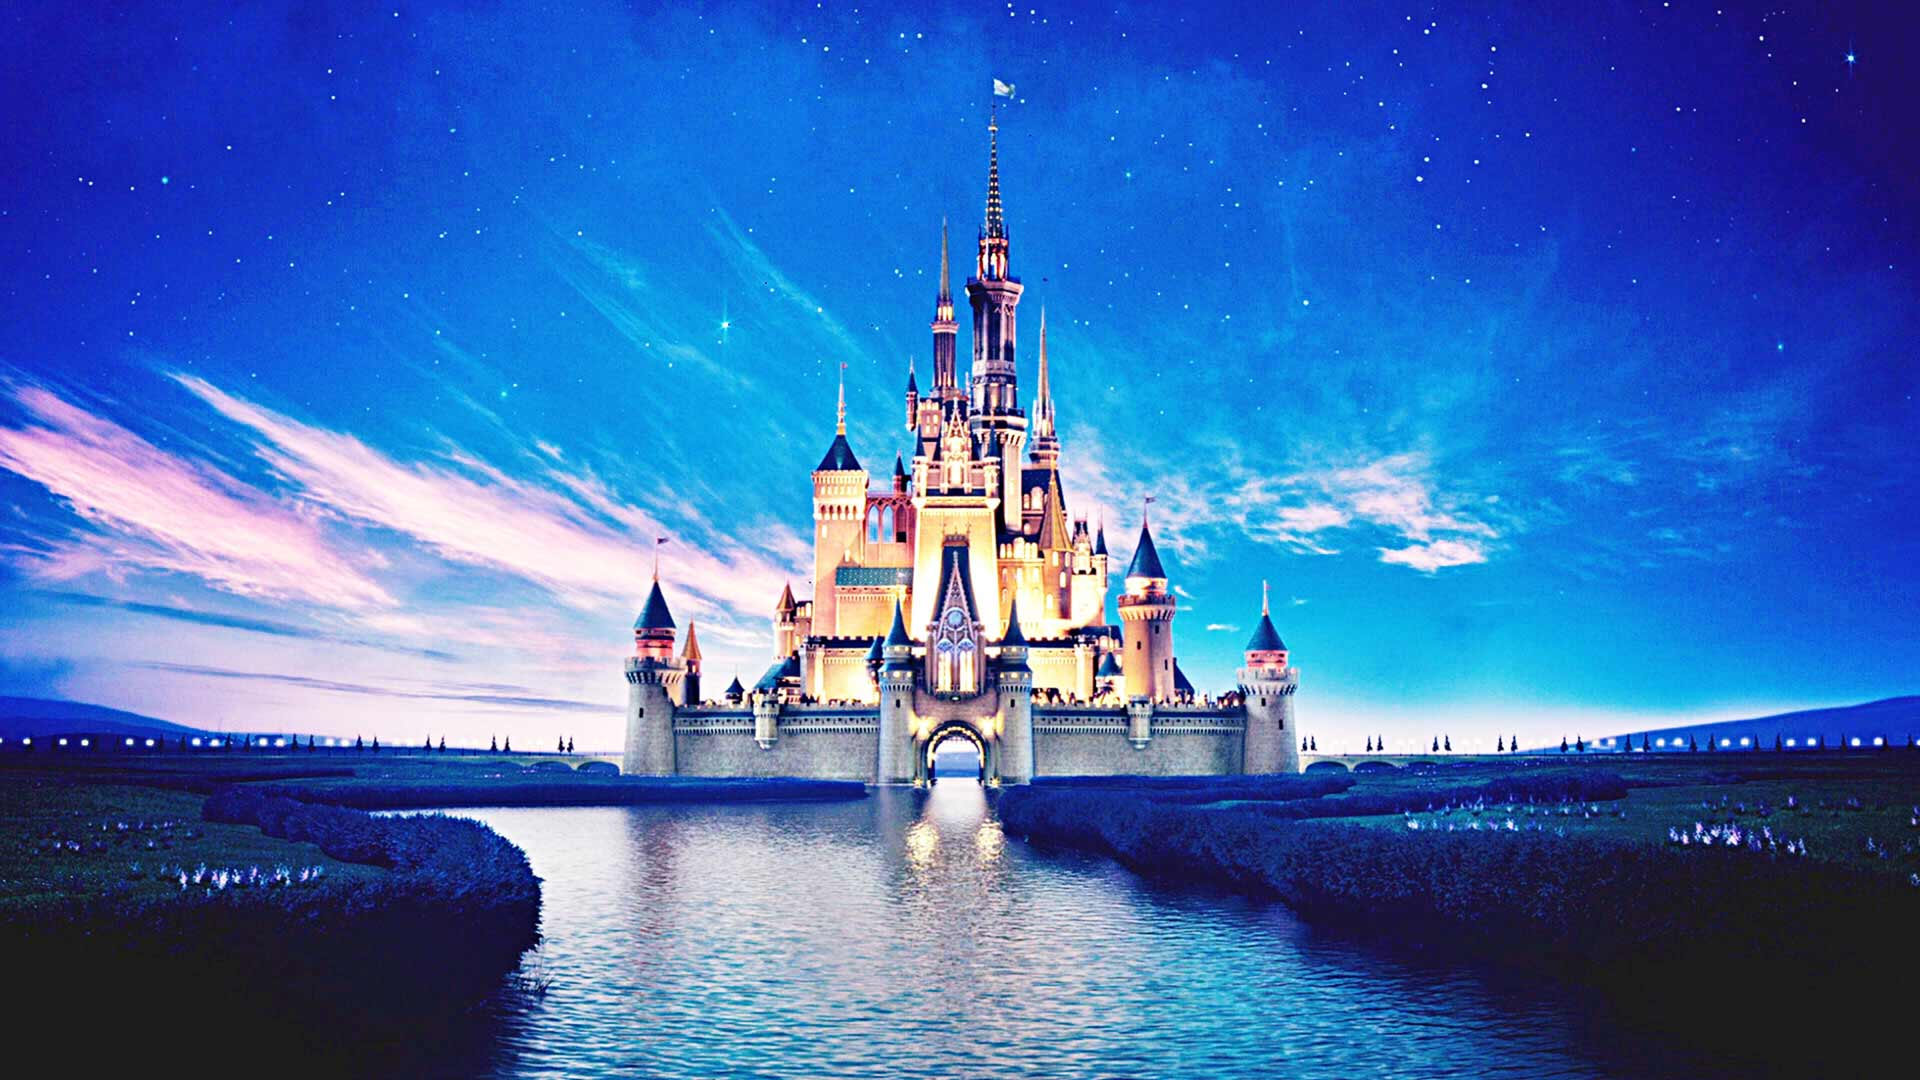 disney wallpapers hd disney castle wallpapers desktop background hd 1920x1080